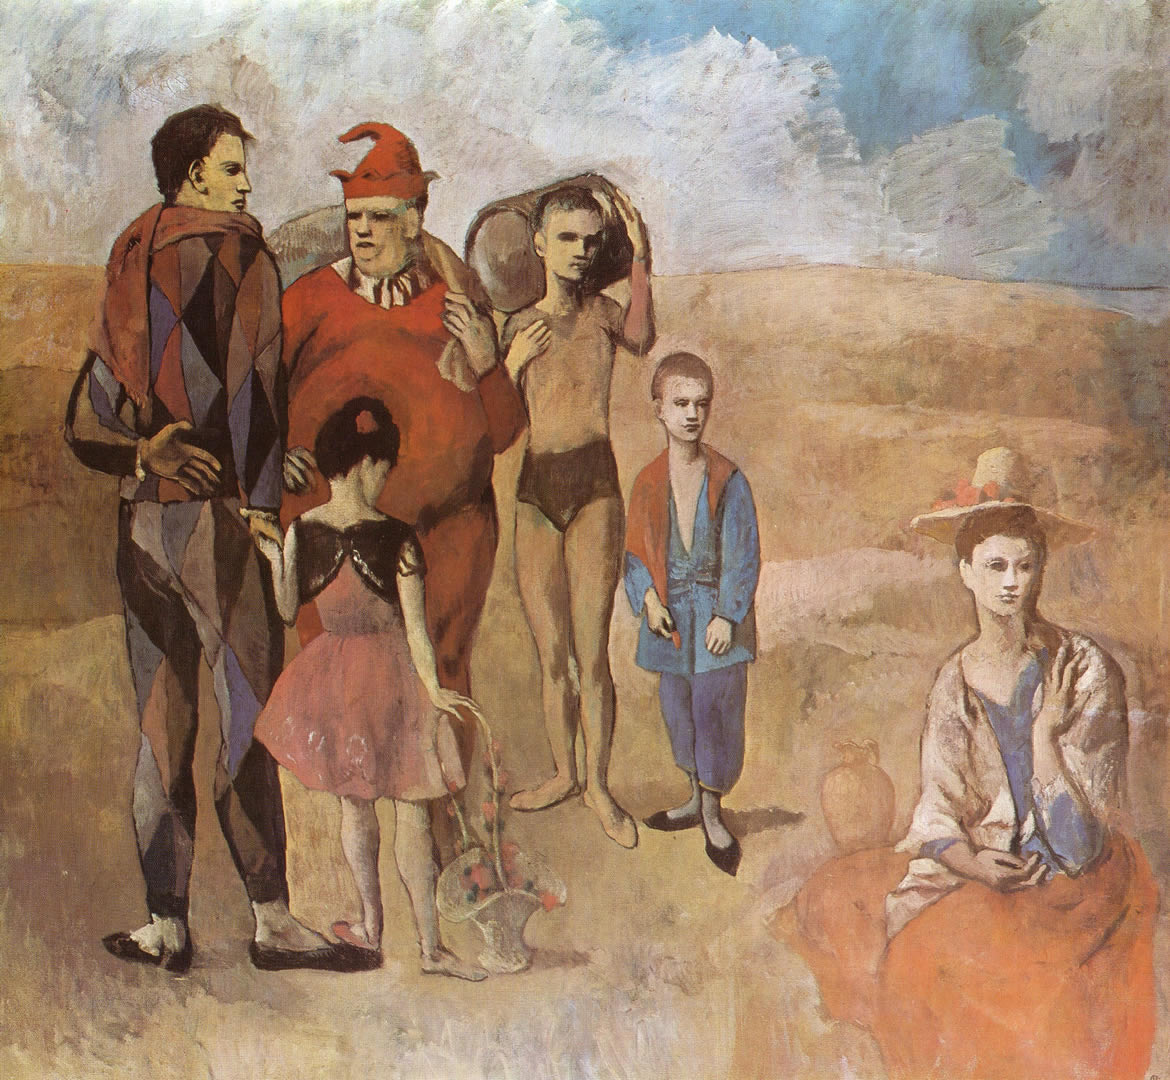 [Family Of Saltimbanques, painted in 1905 during the 24 year-old Picasso's Rose Period.]